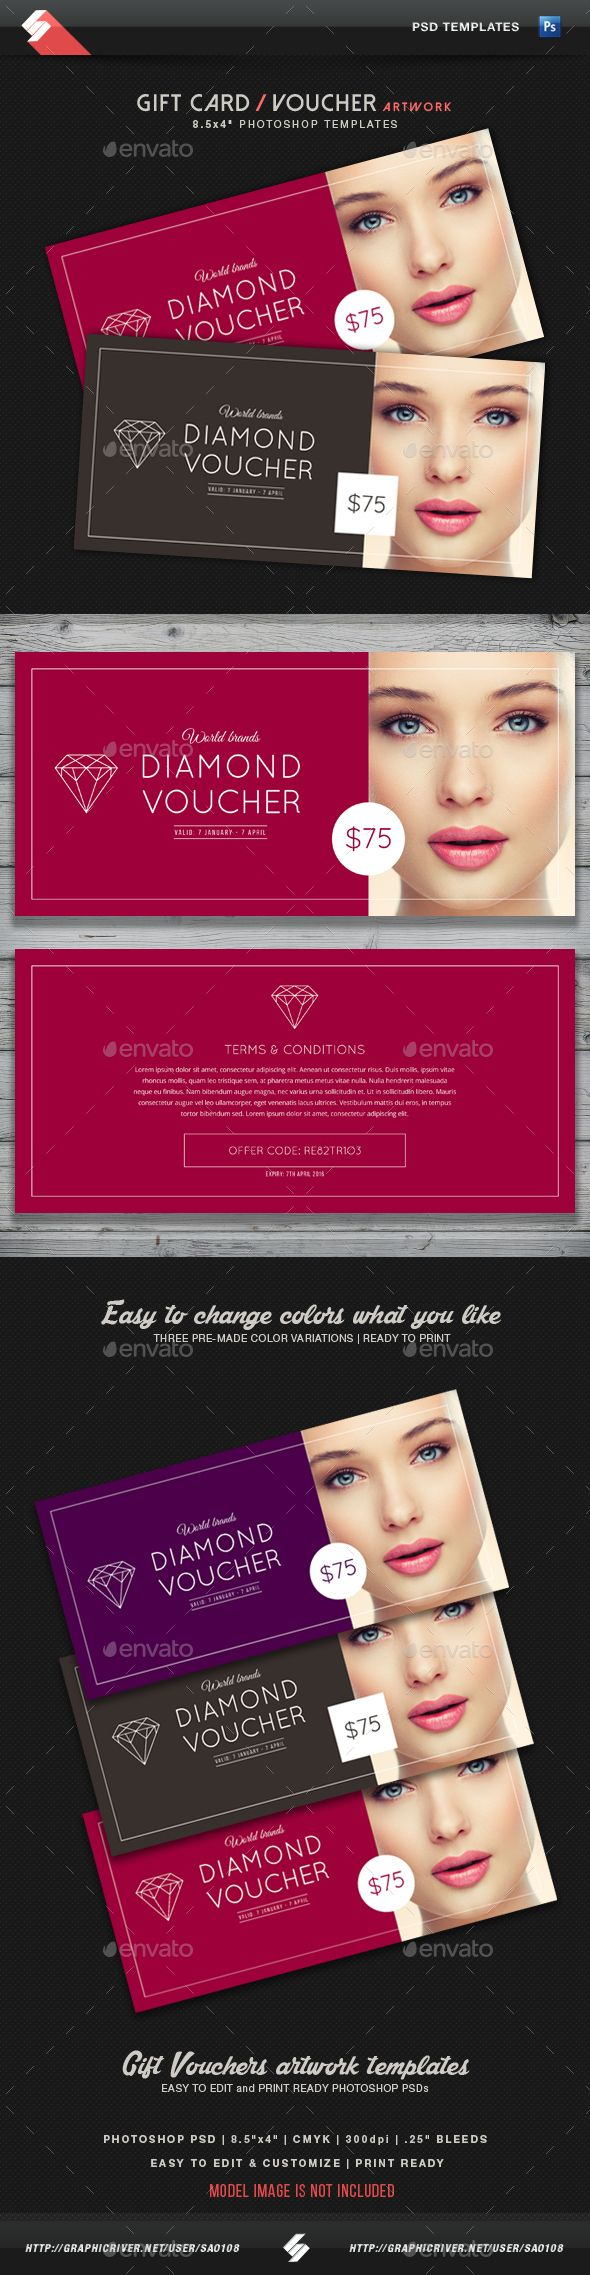 Diamond Voucher - Gift Card Template - Loyalty Cards Cards & Invites